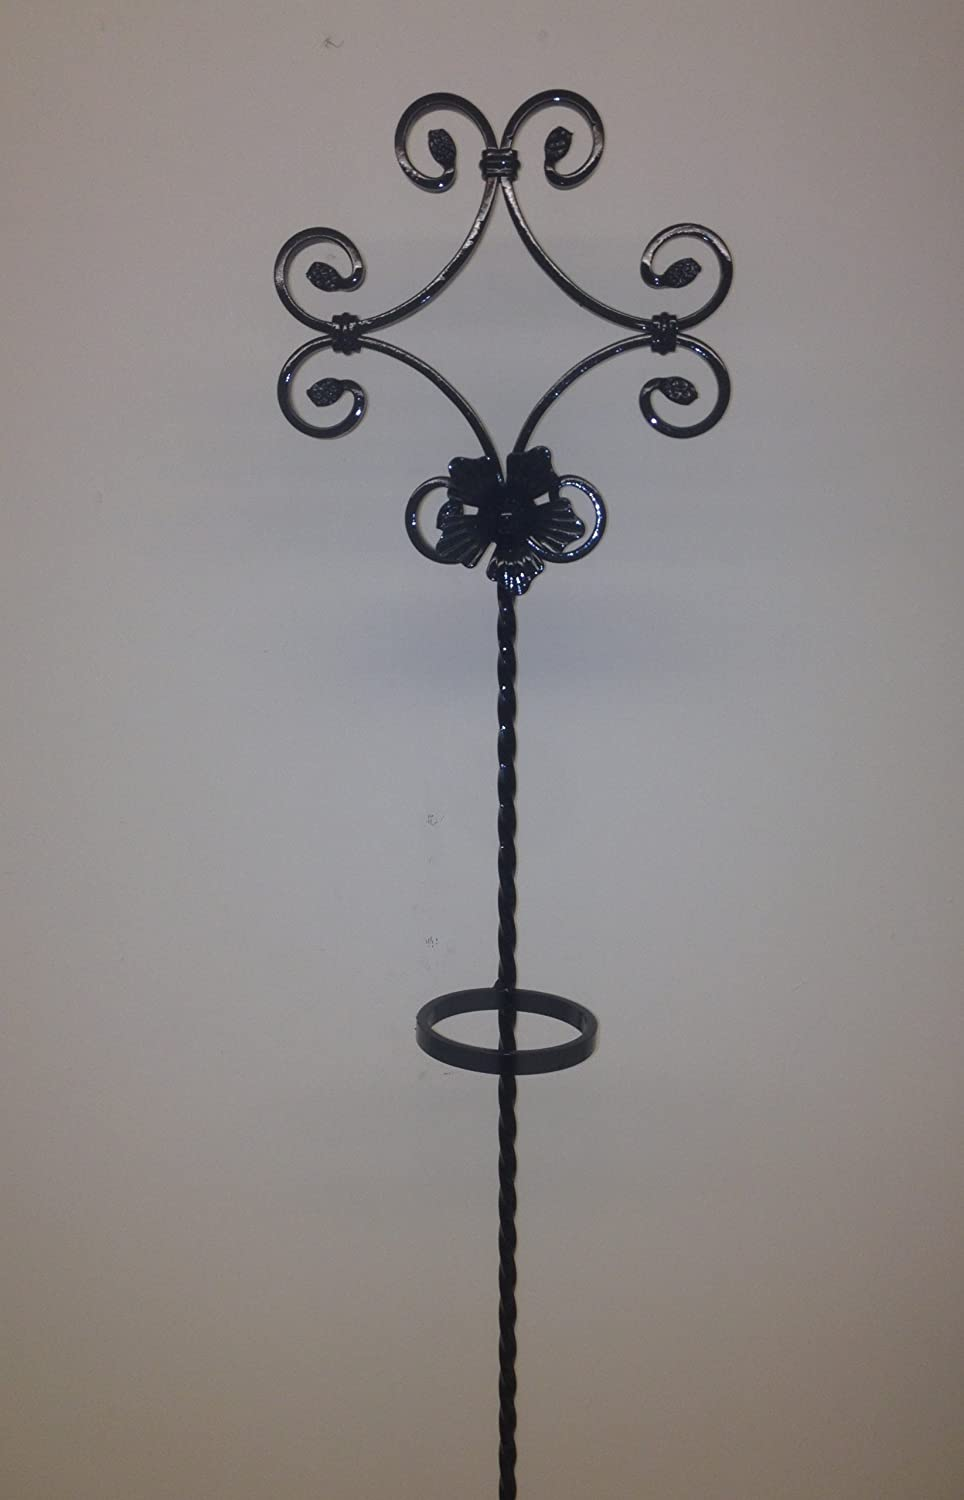 Wrought iron flower stand vase holder memorial plaque amazon wrought iron flower stand vase holder memorial plaque amazon garden outdoors reviewsmspy